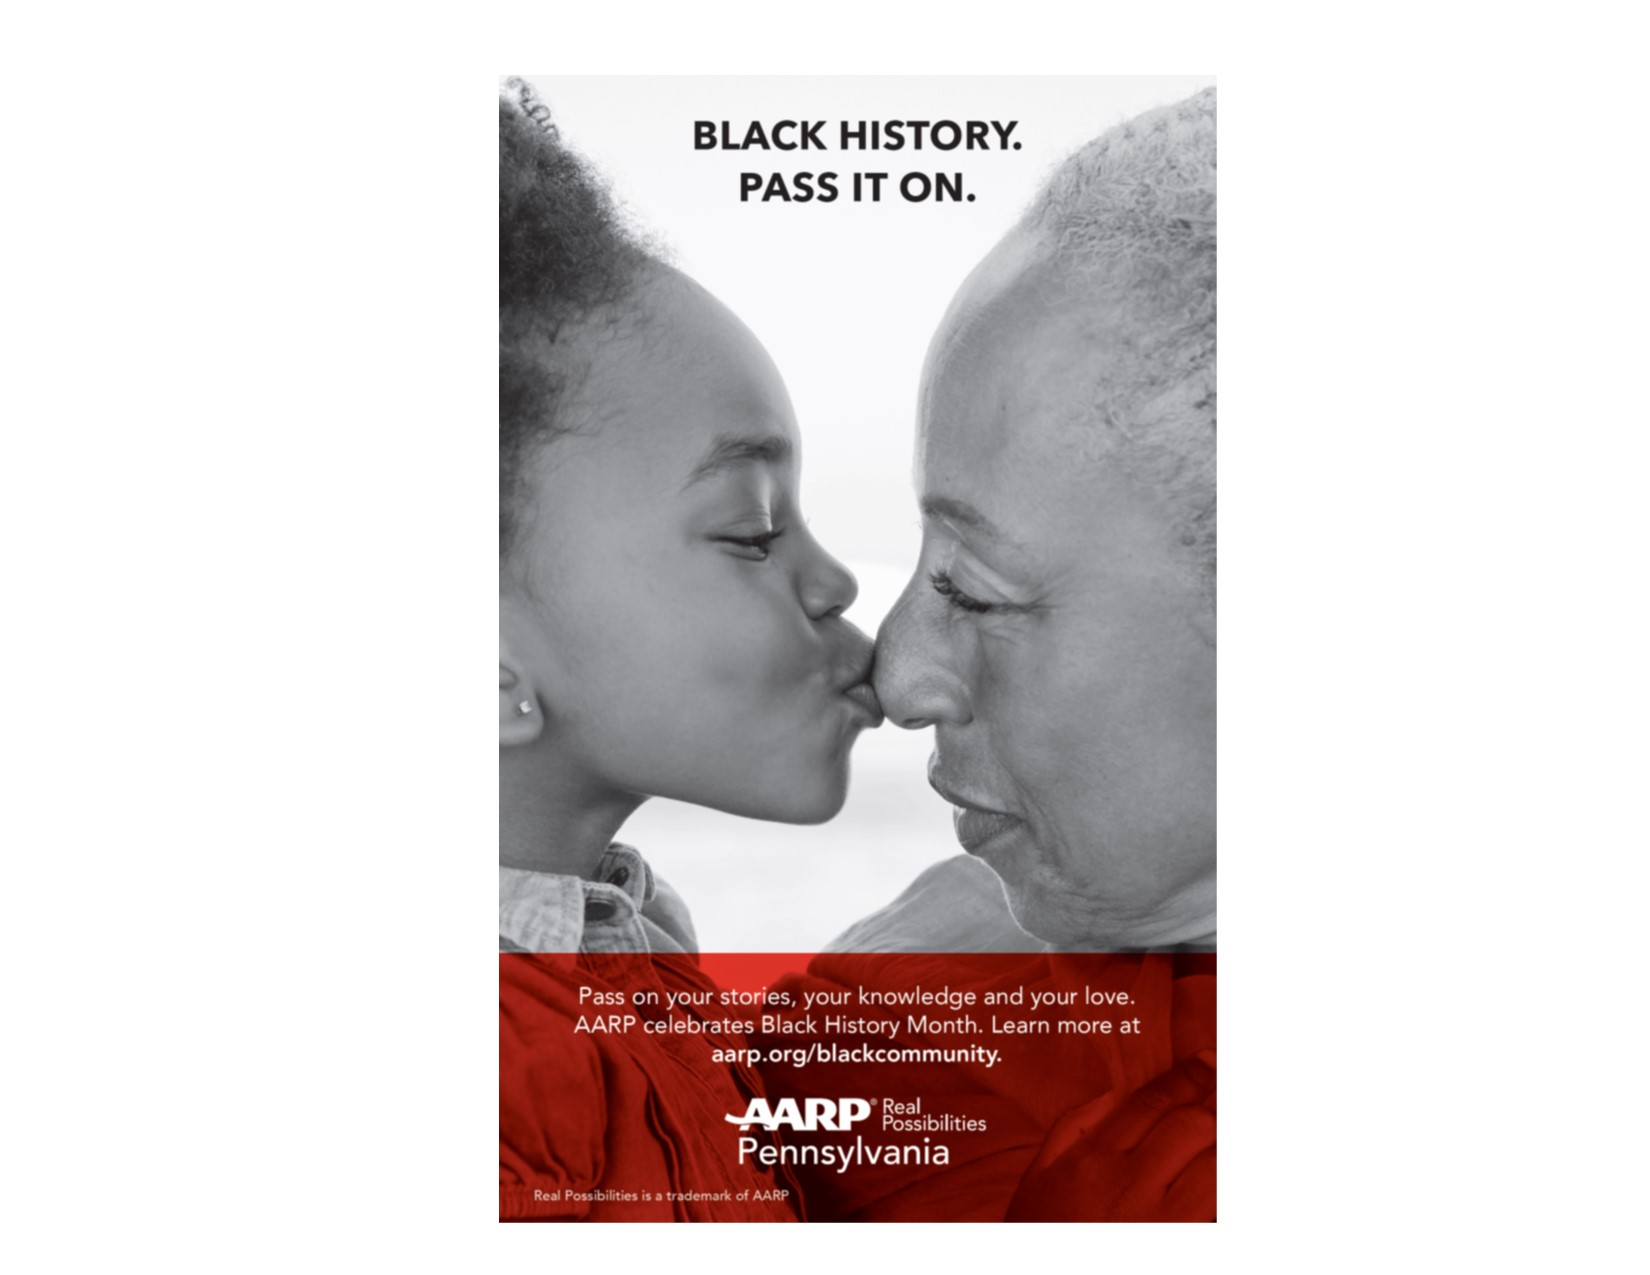 In Philadelphia, AARP Celebrates Black History and Legacy